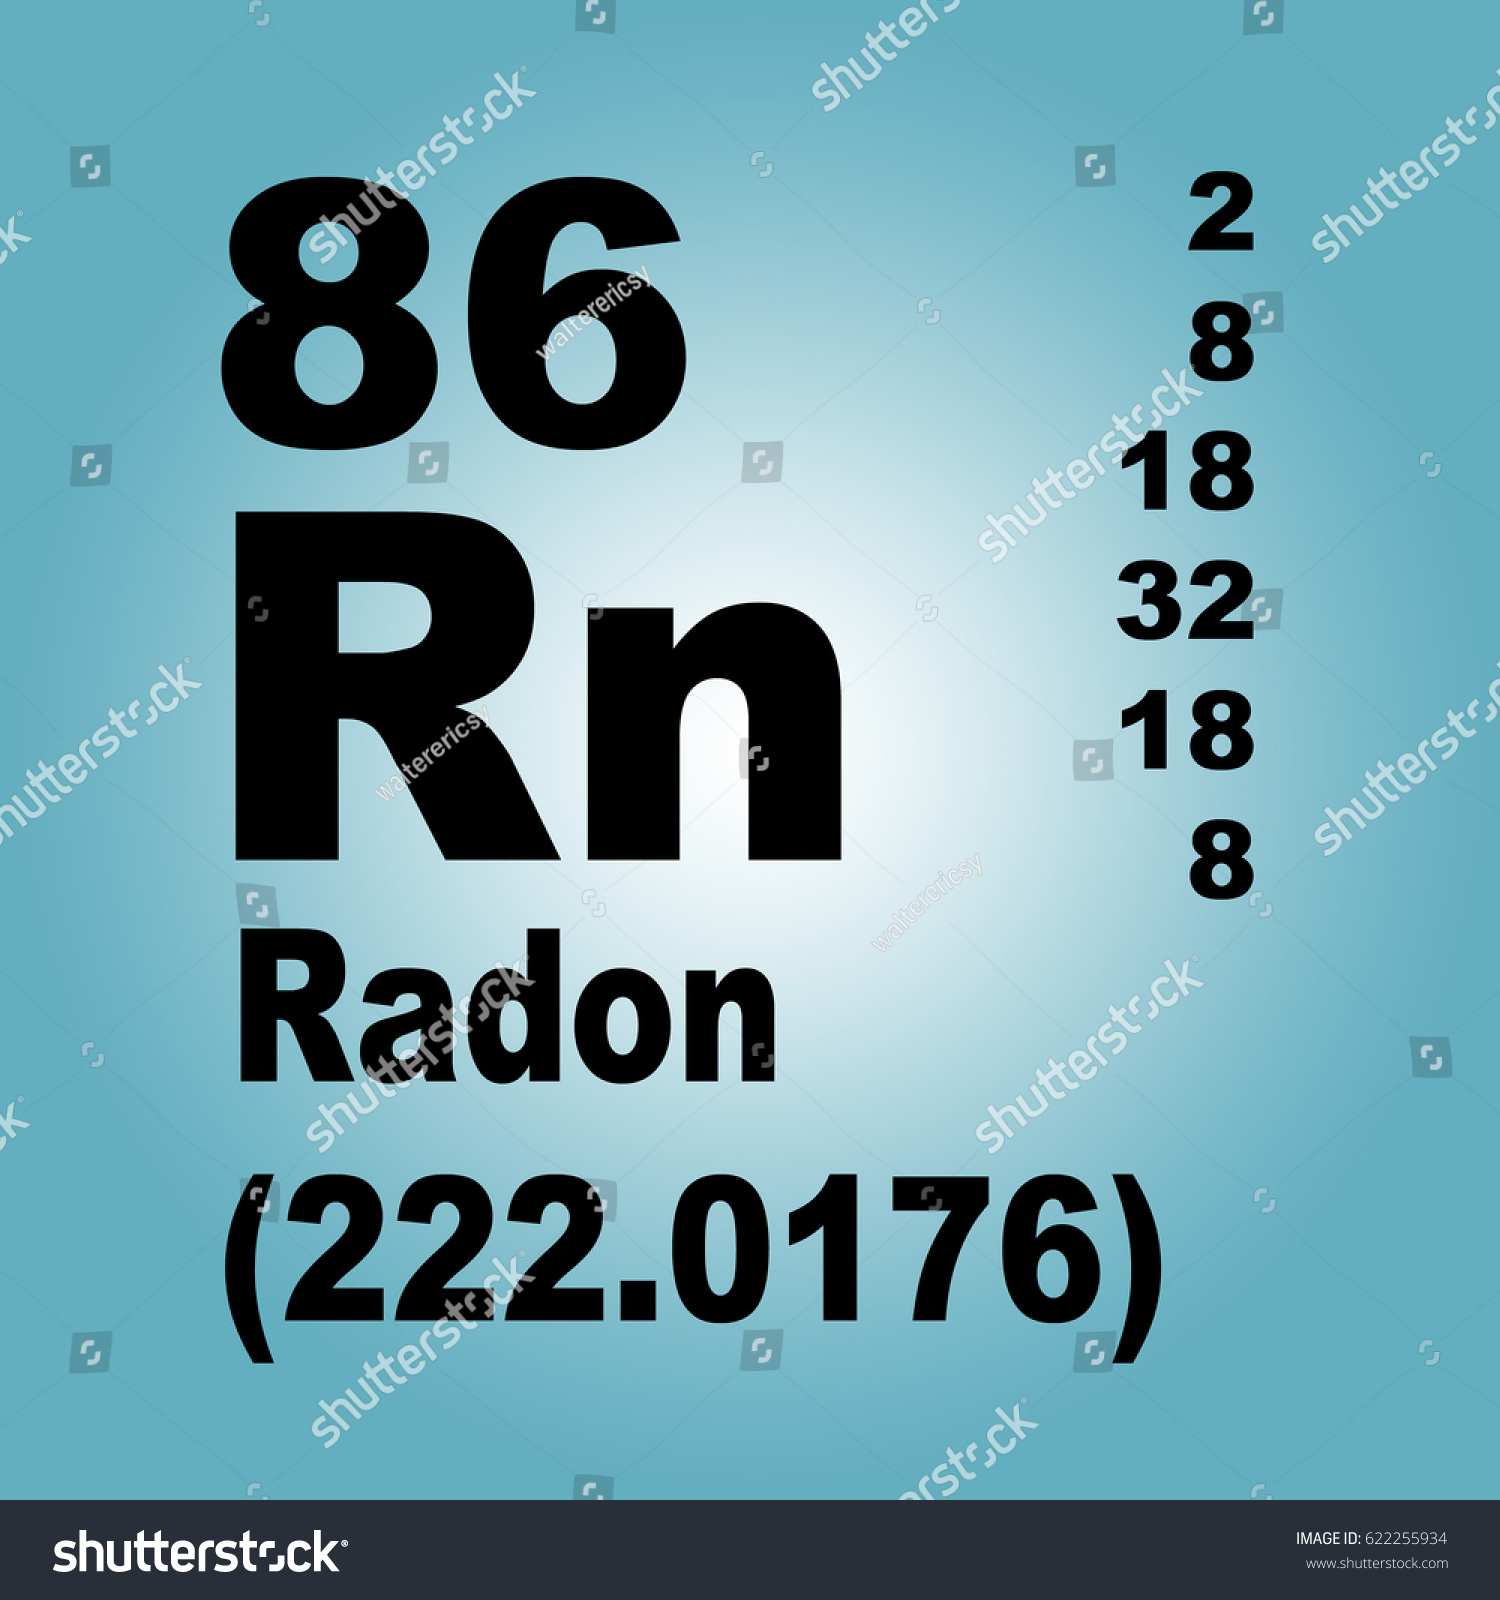 Radon periodic table facts choice image periodic table images radon periodic table facts choice image periodic table images radon periodic table aviongoldcorp radon periodic table gamestrikefo Image collections